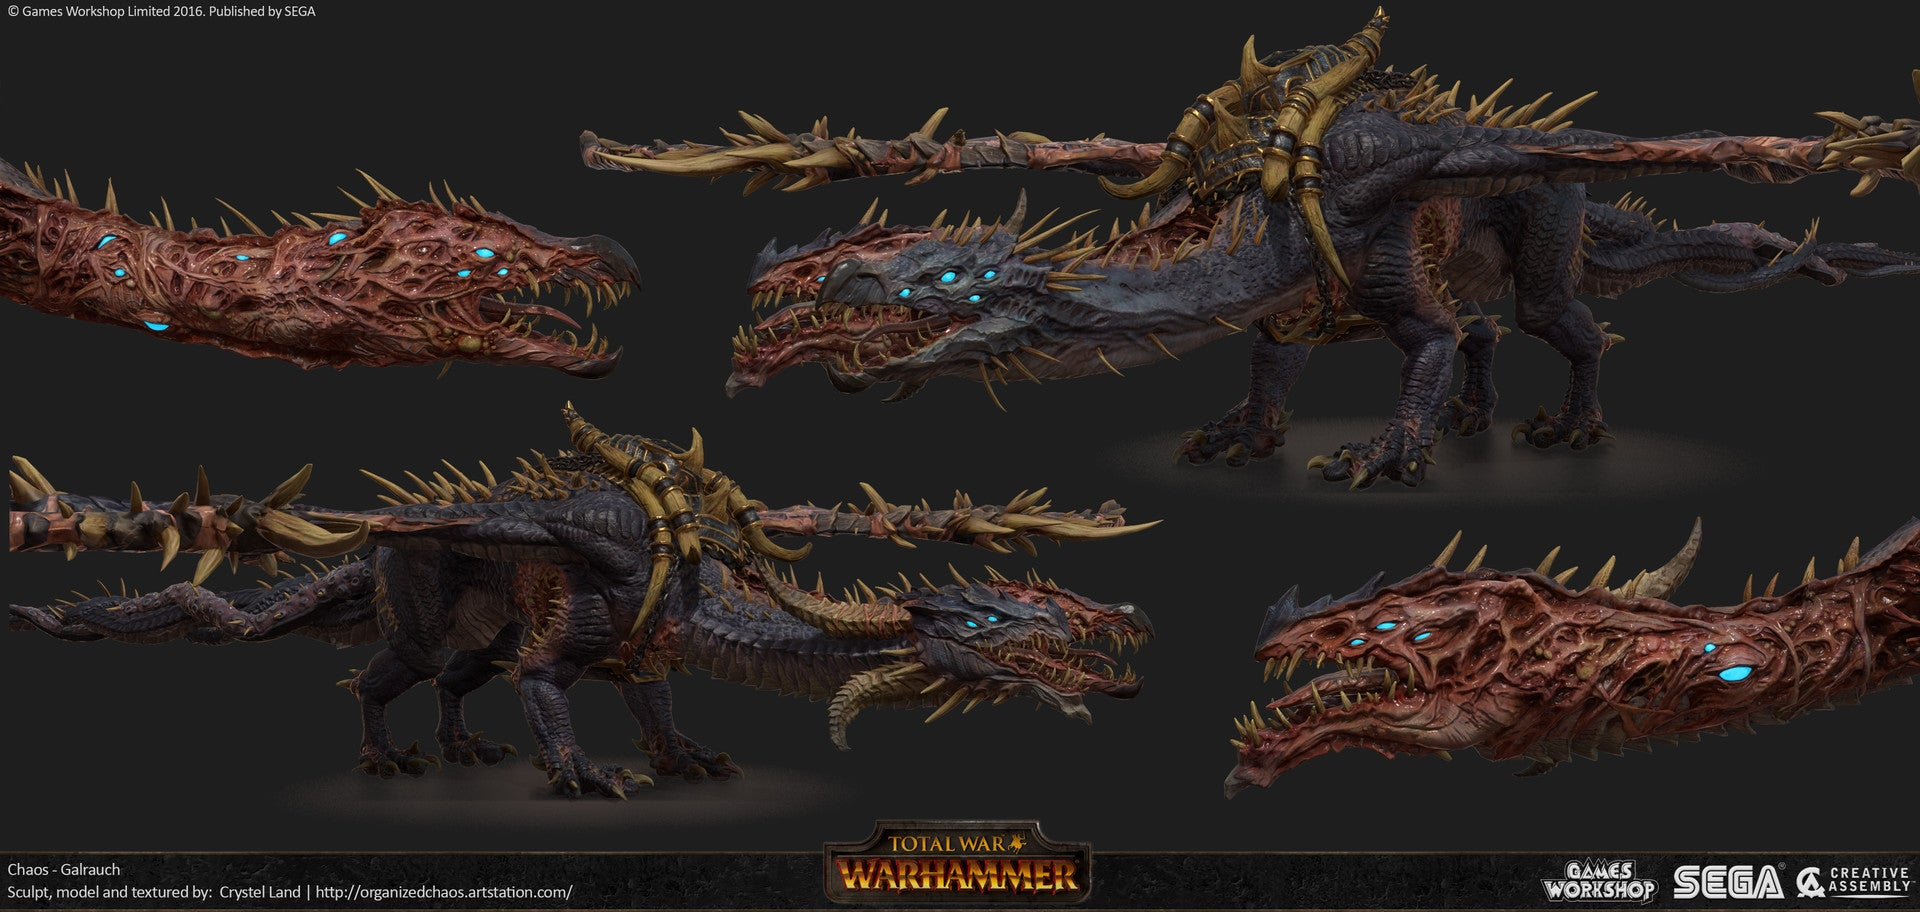 The Art Of Total War: Warhammer